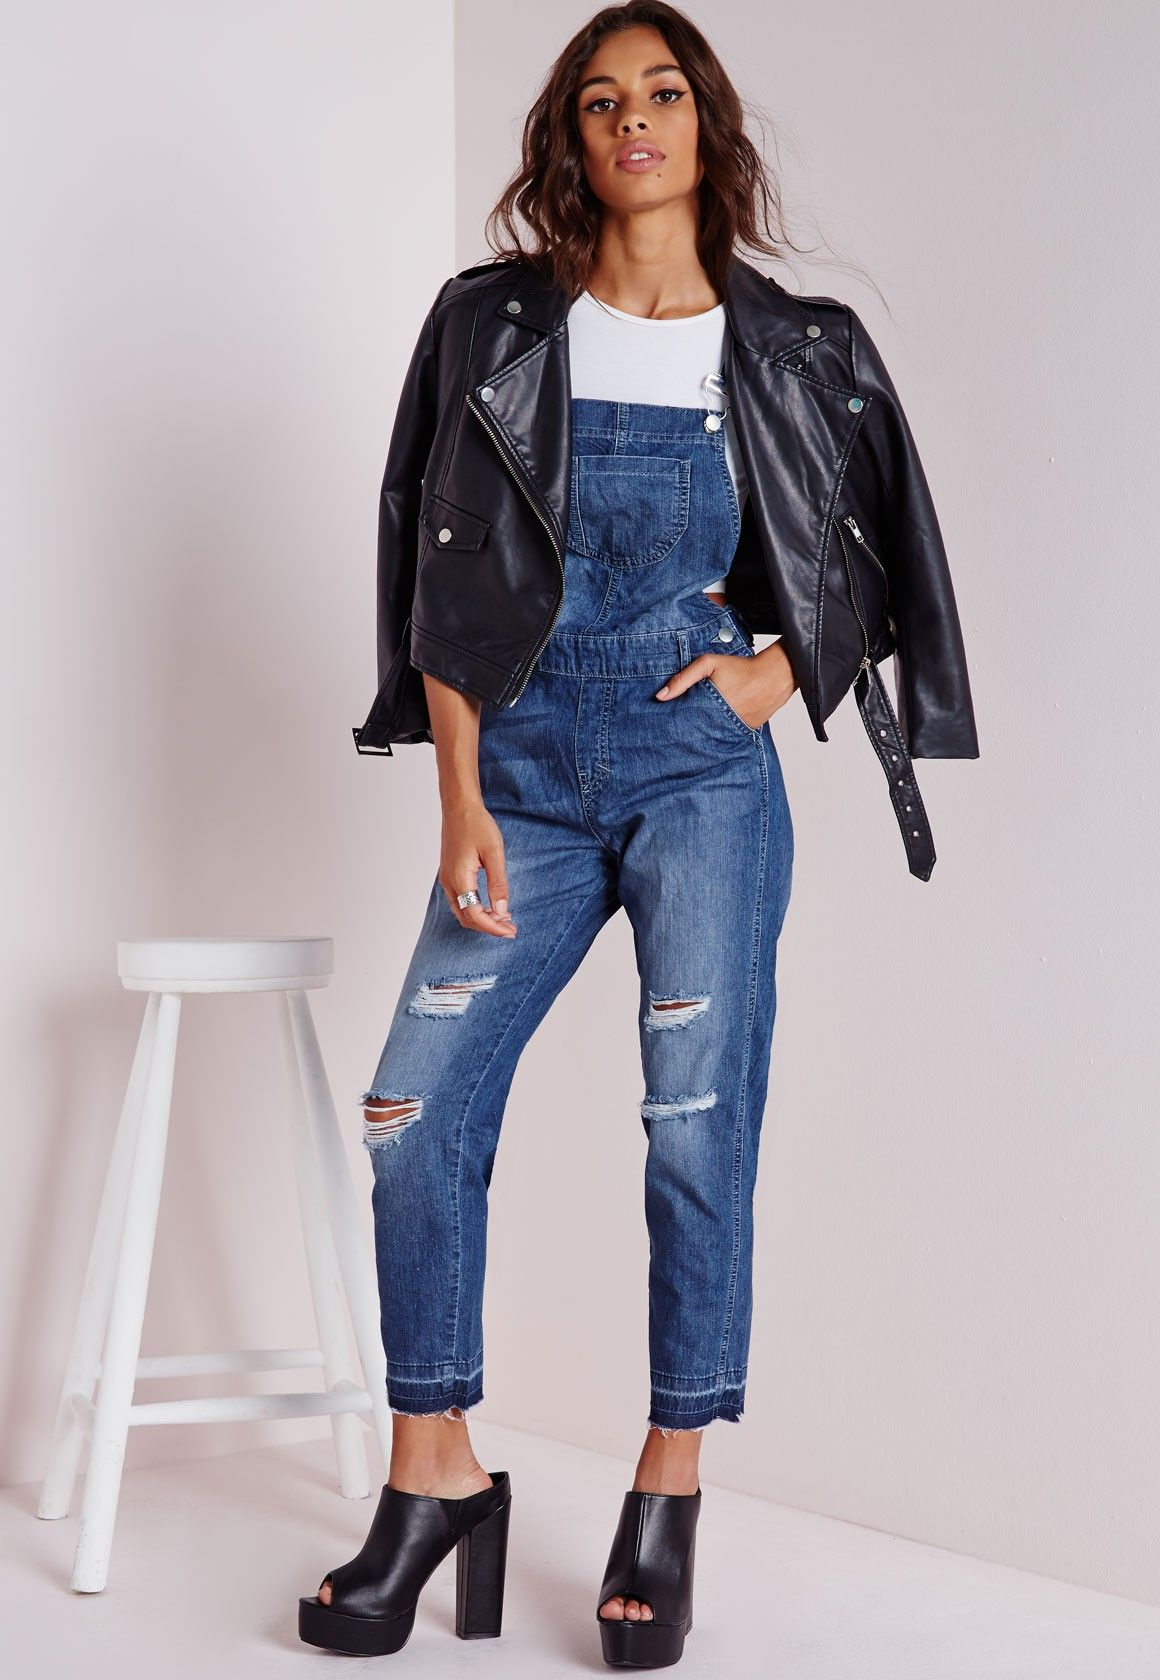 b627d6310ef We have fallen head over heels for these denim overalls which falls  perfectly on to our lust list. These super fierce overalls feature ripped  detial down ...